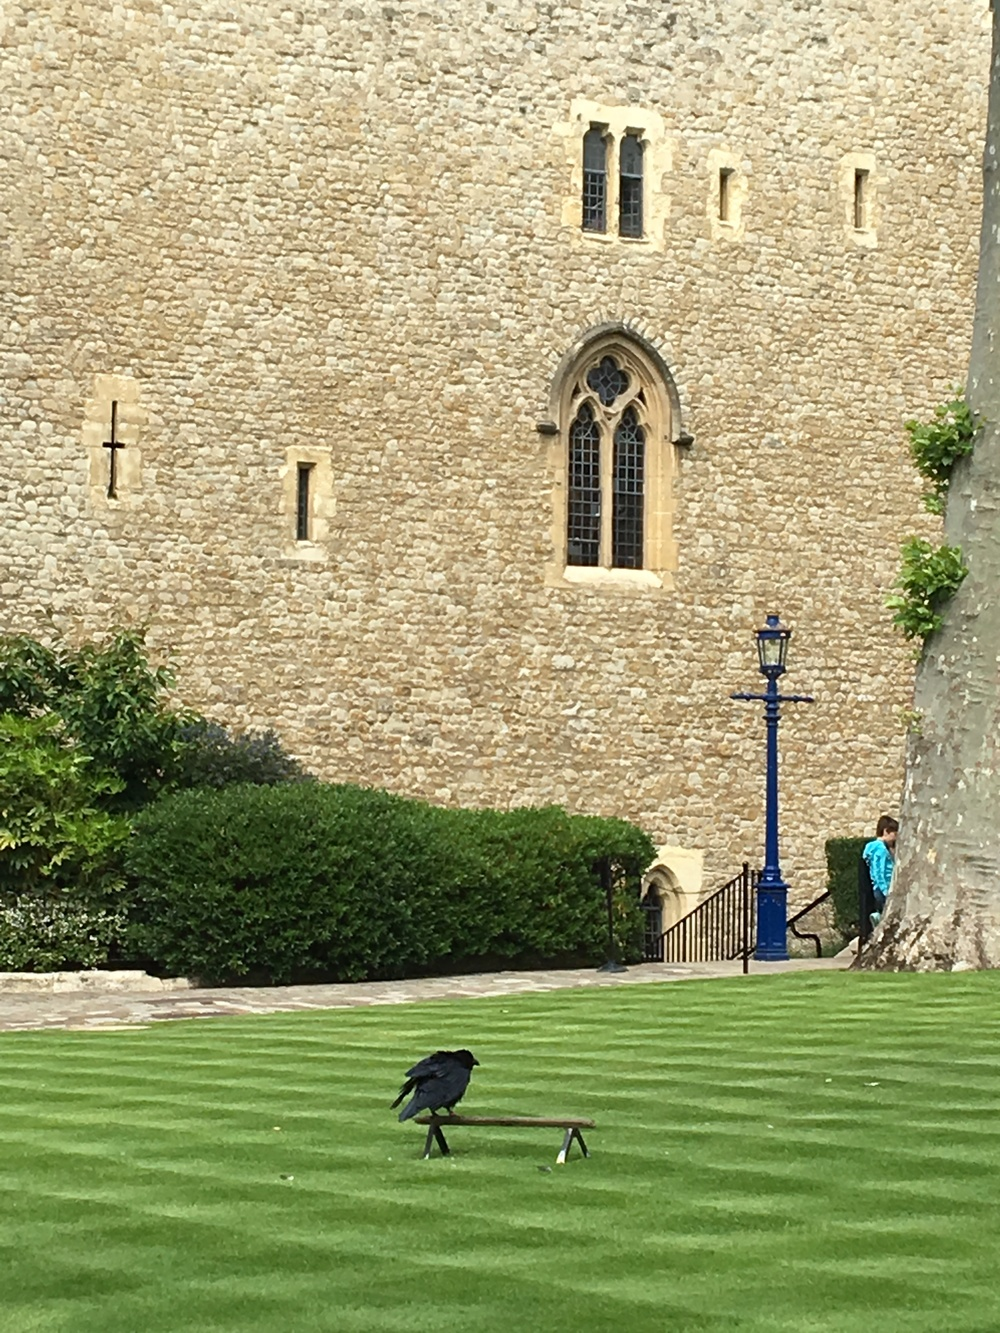 One of the resident ravens in front of the Beauchamp Tower, where the most famous prisoners made their marks, often bringing in their own stone cutters to leave their messages on the wall.